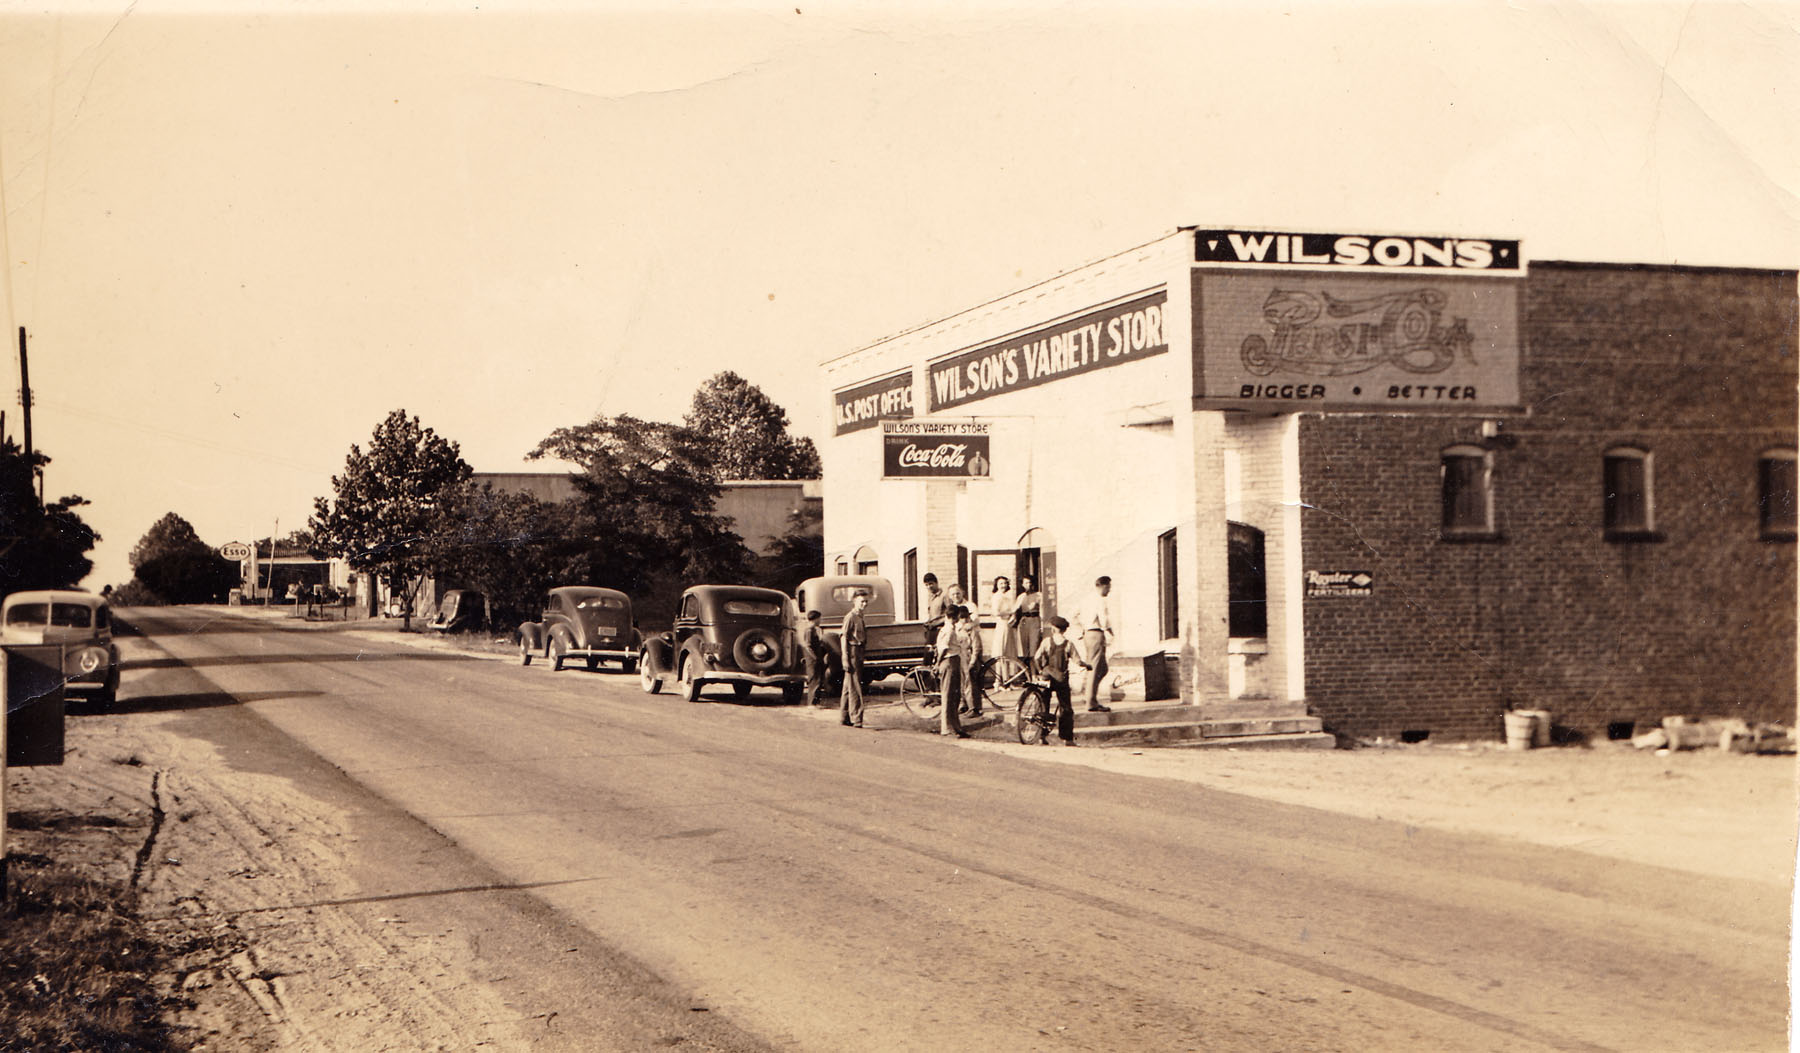 Town Center about 1940.